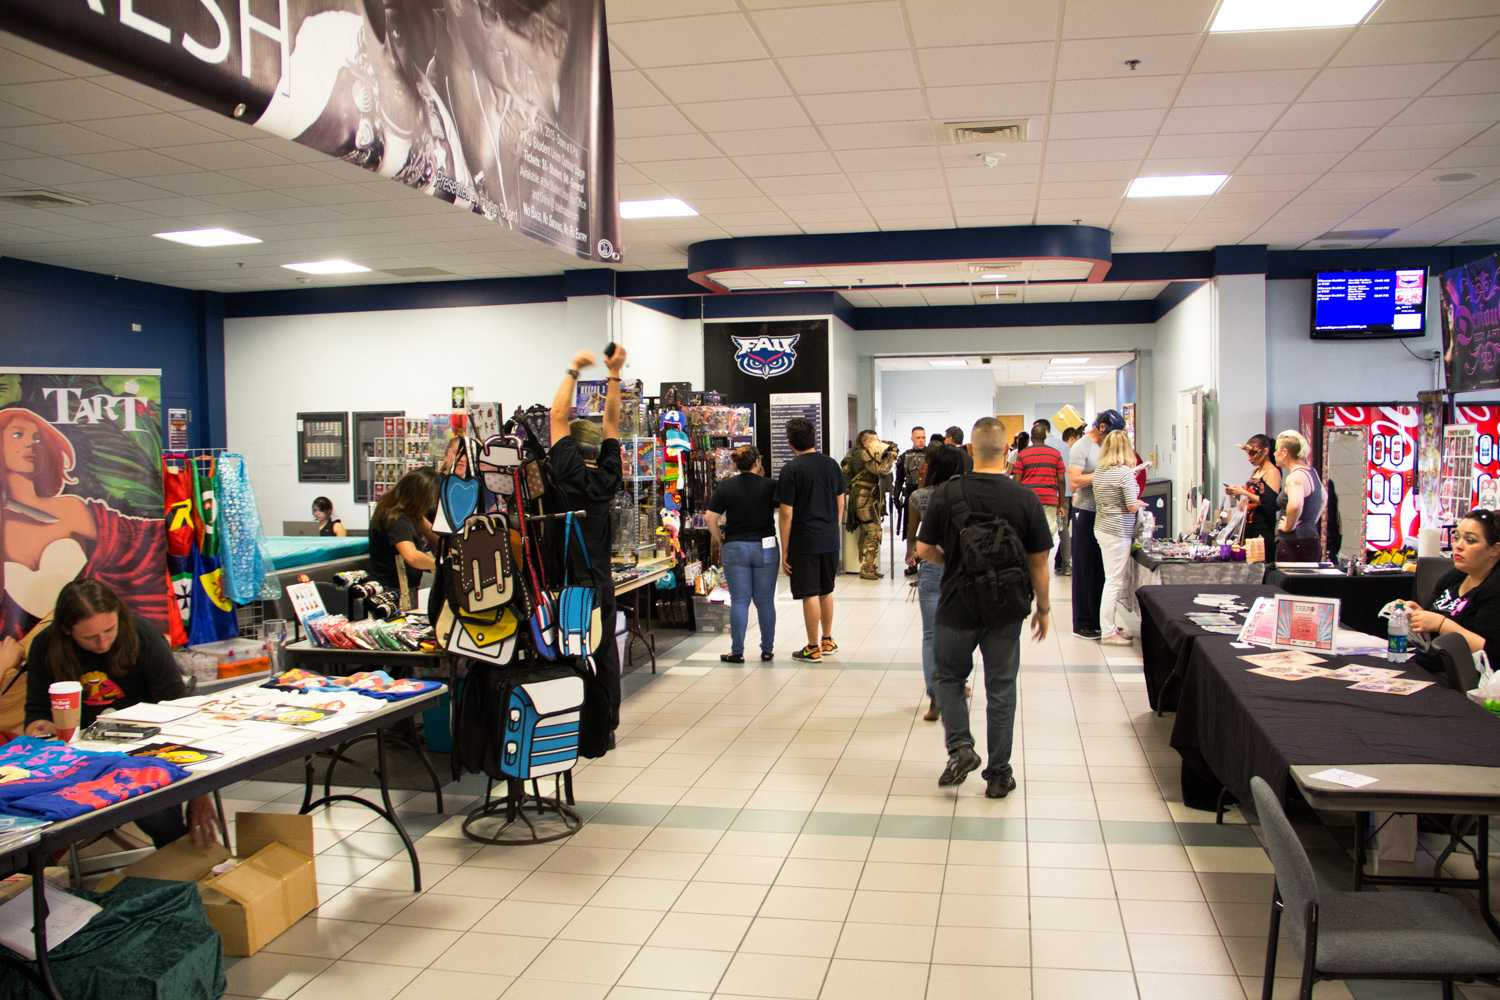 Vendors prepared for business in the lobby of the Student Union for the festival, which went on from March 21 to the 22.